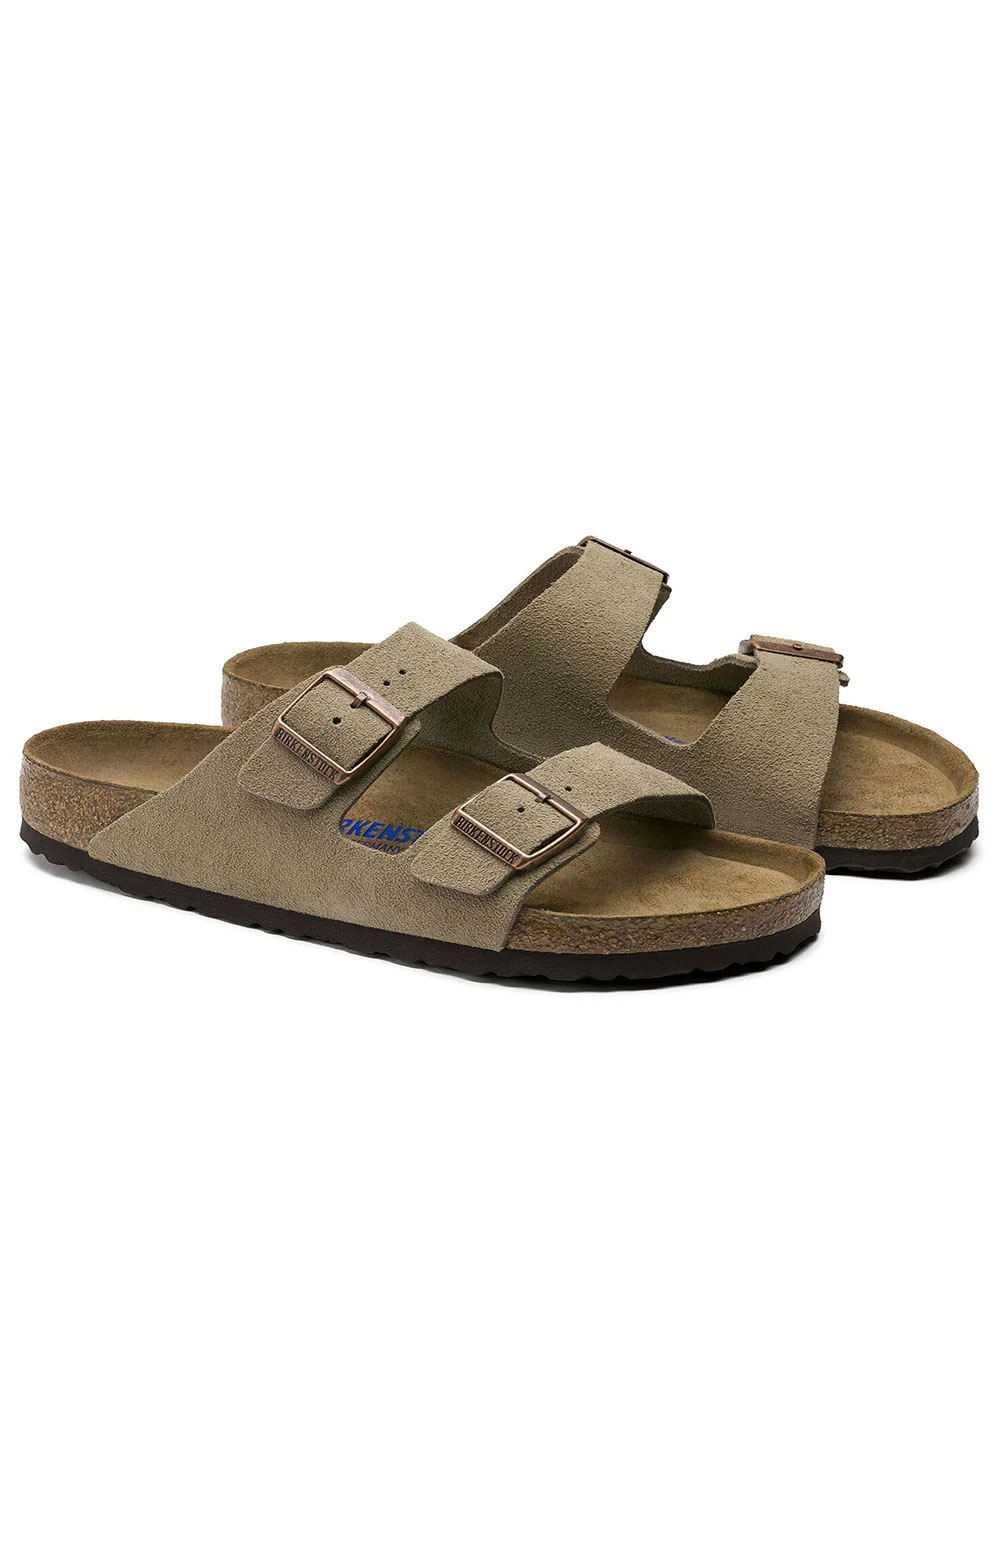 (0951303) Arizona Soft Foodbed Sandals - Taupe